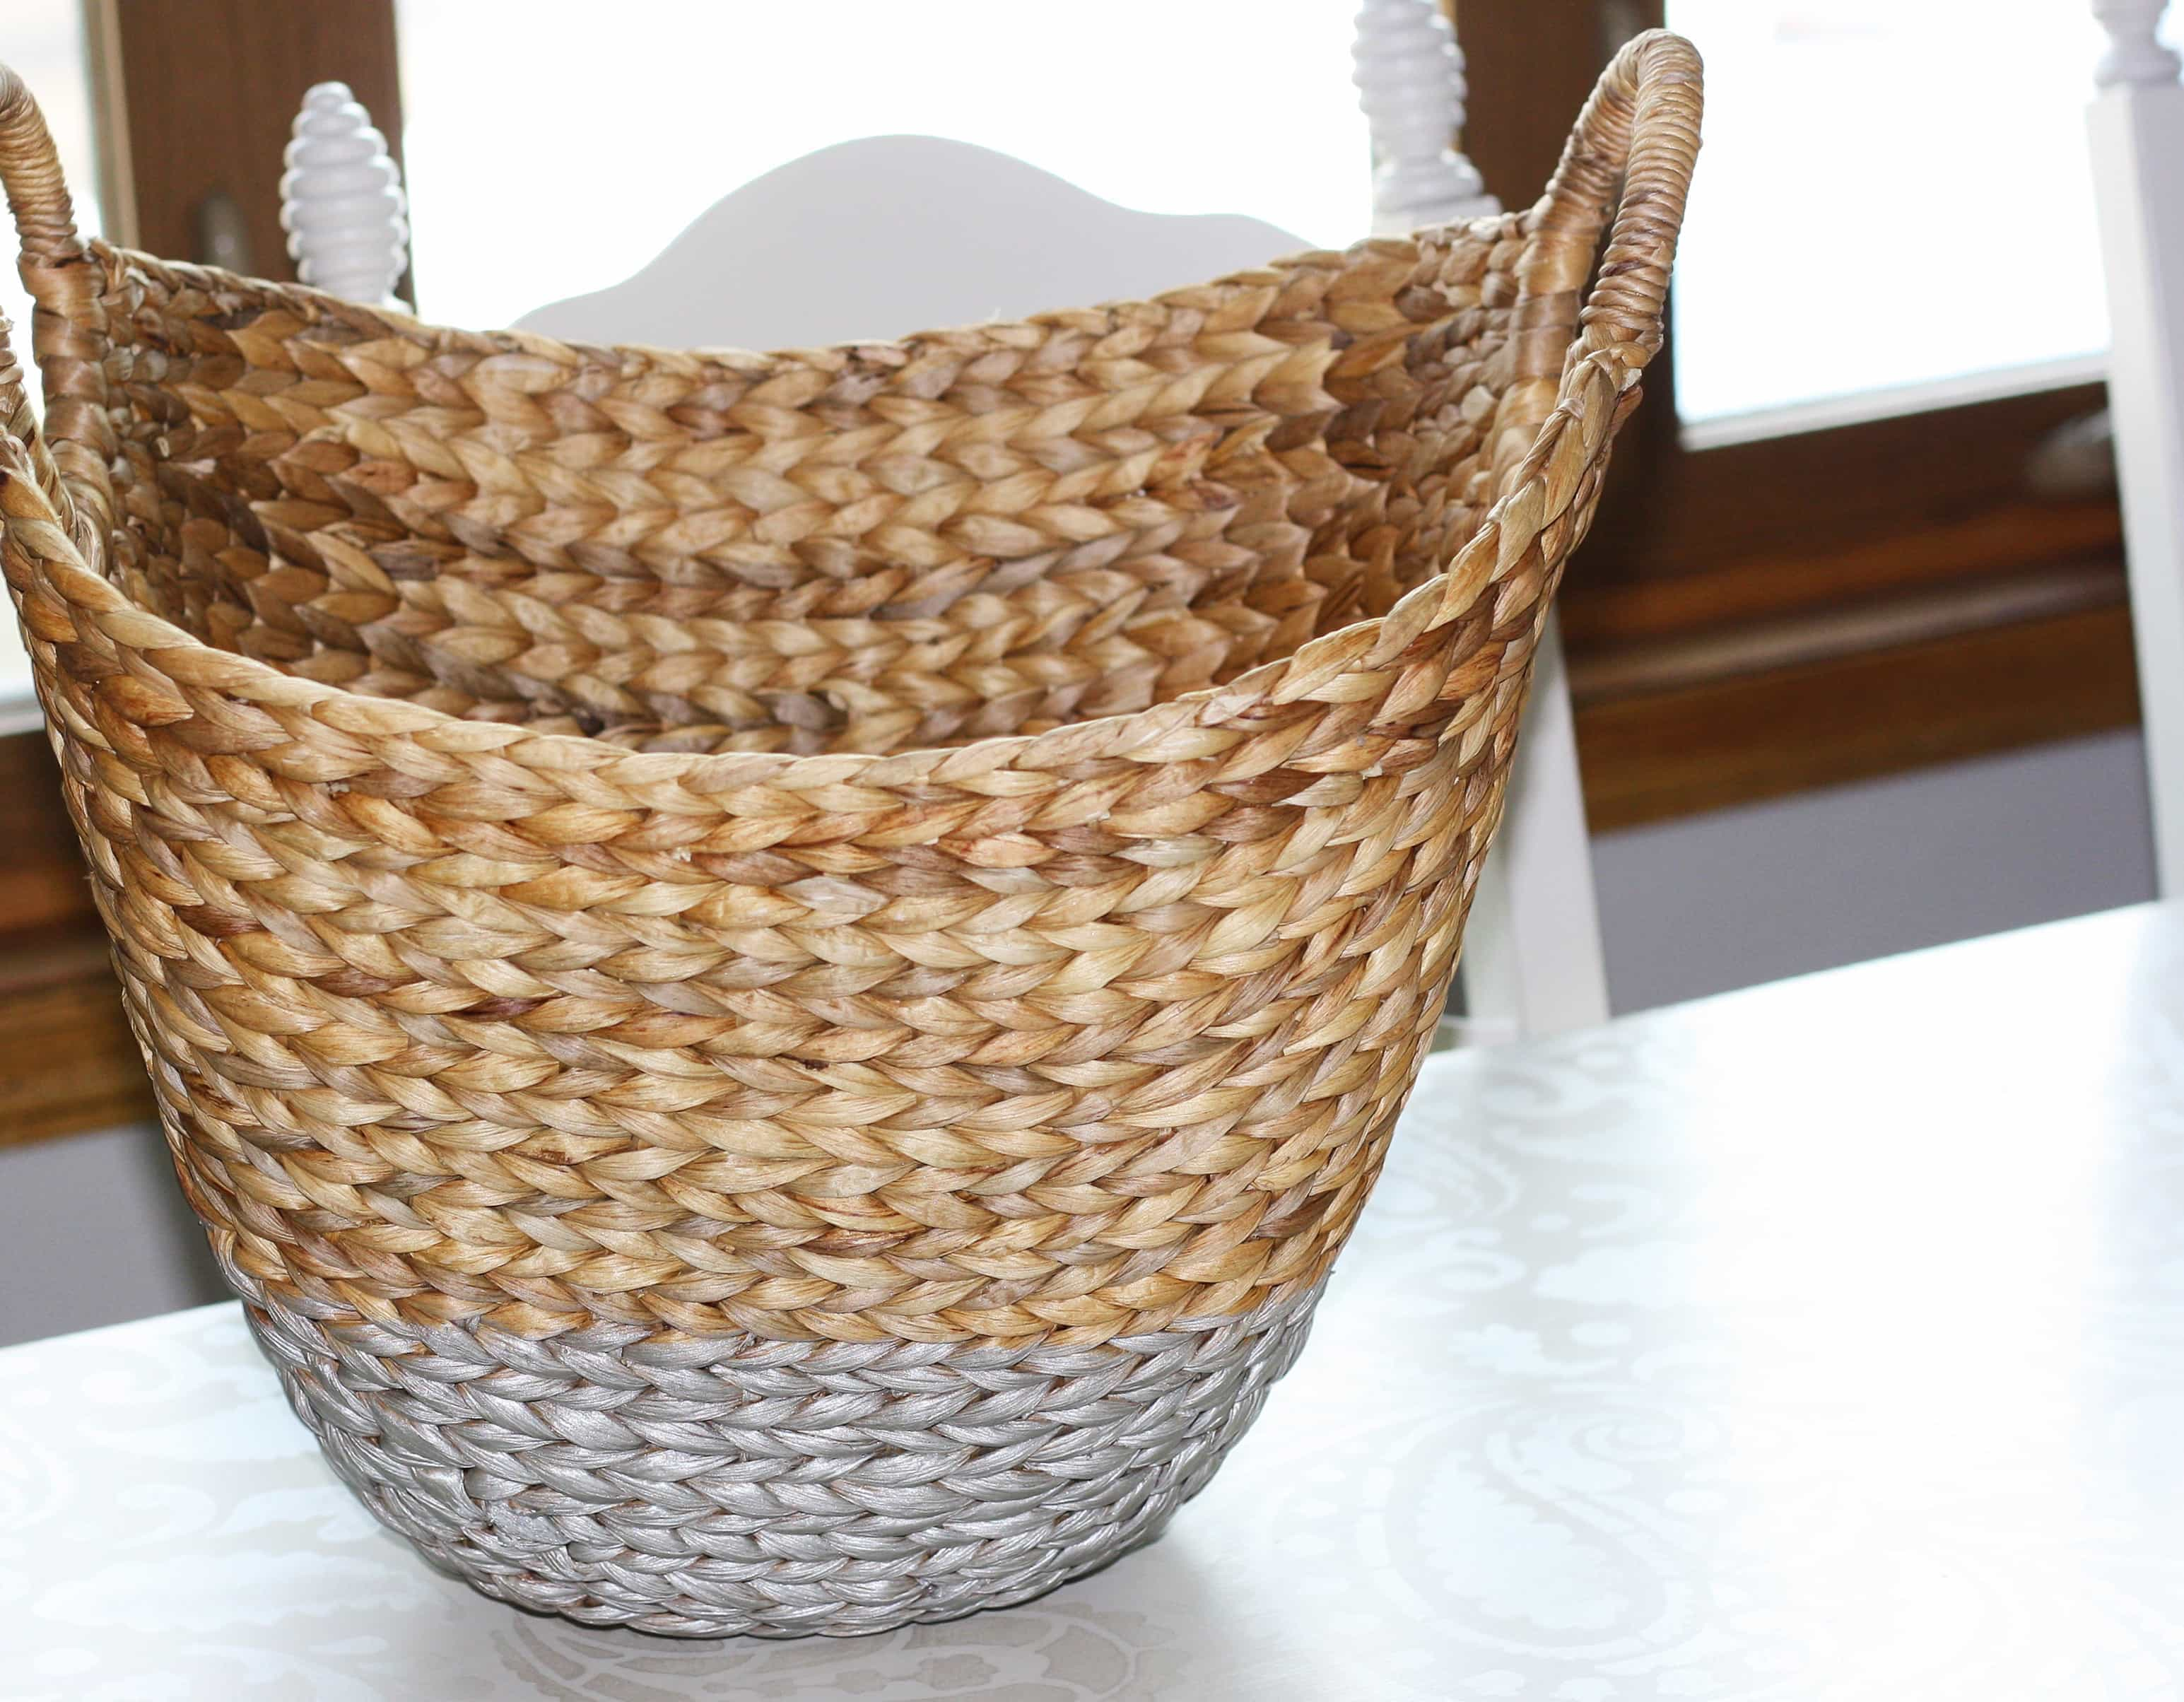 Painted Basket Project - www.refashionablylate.com